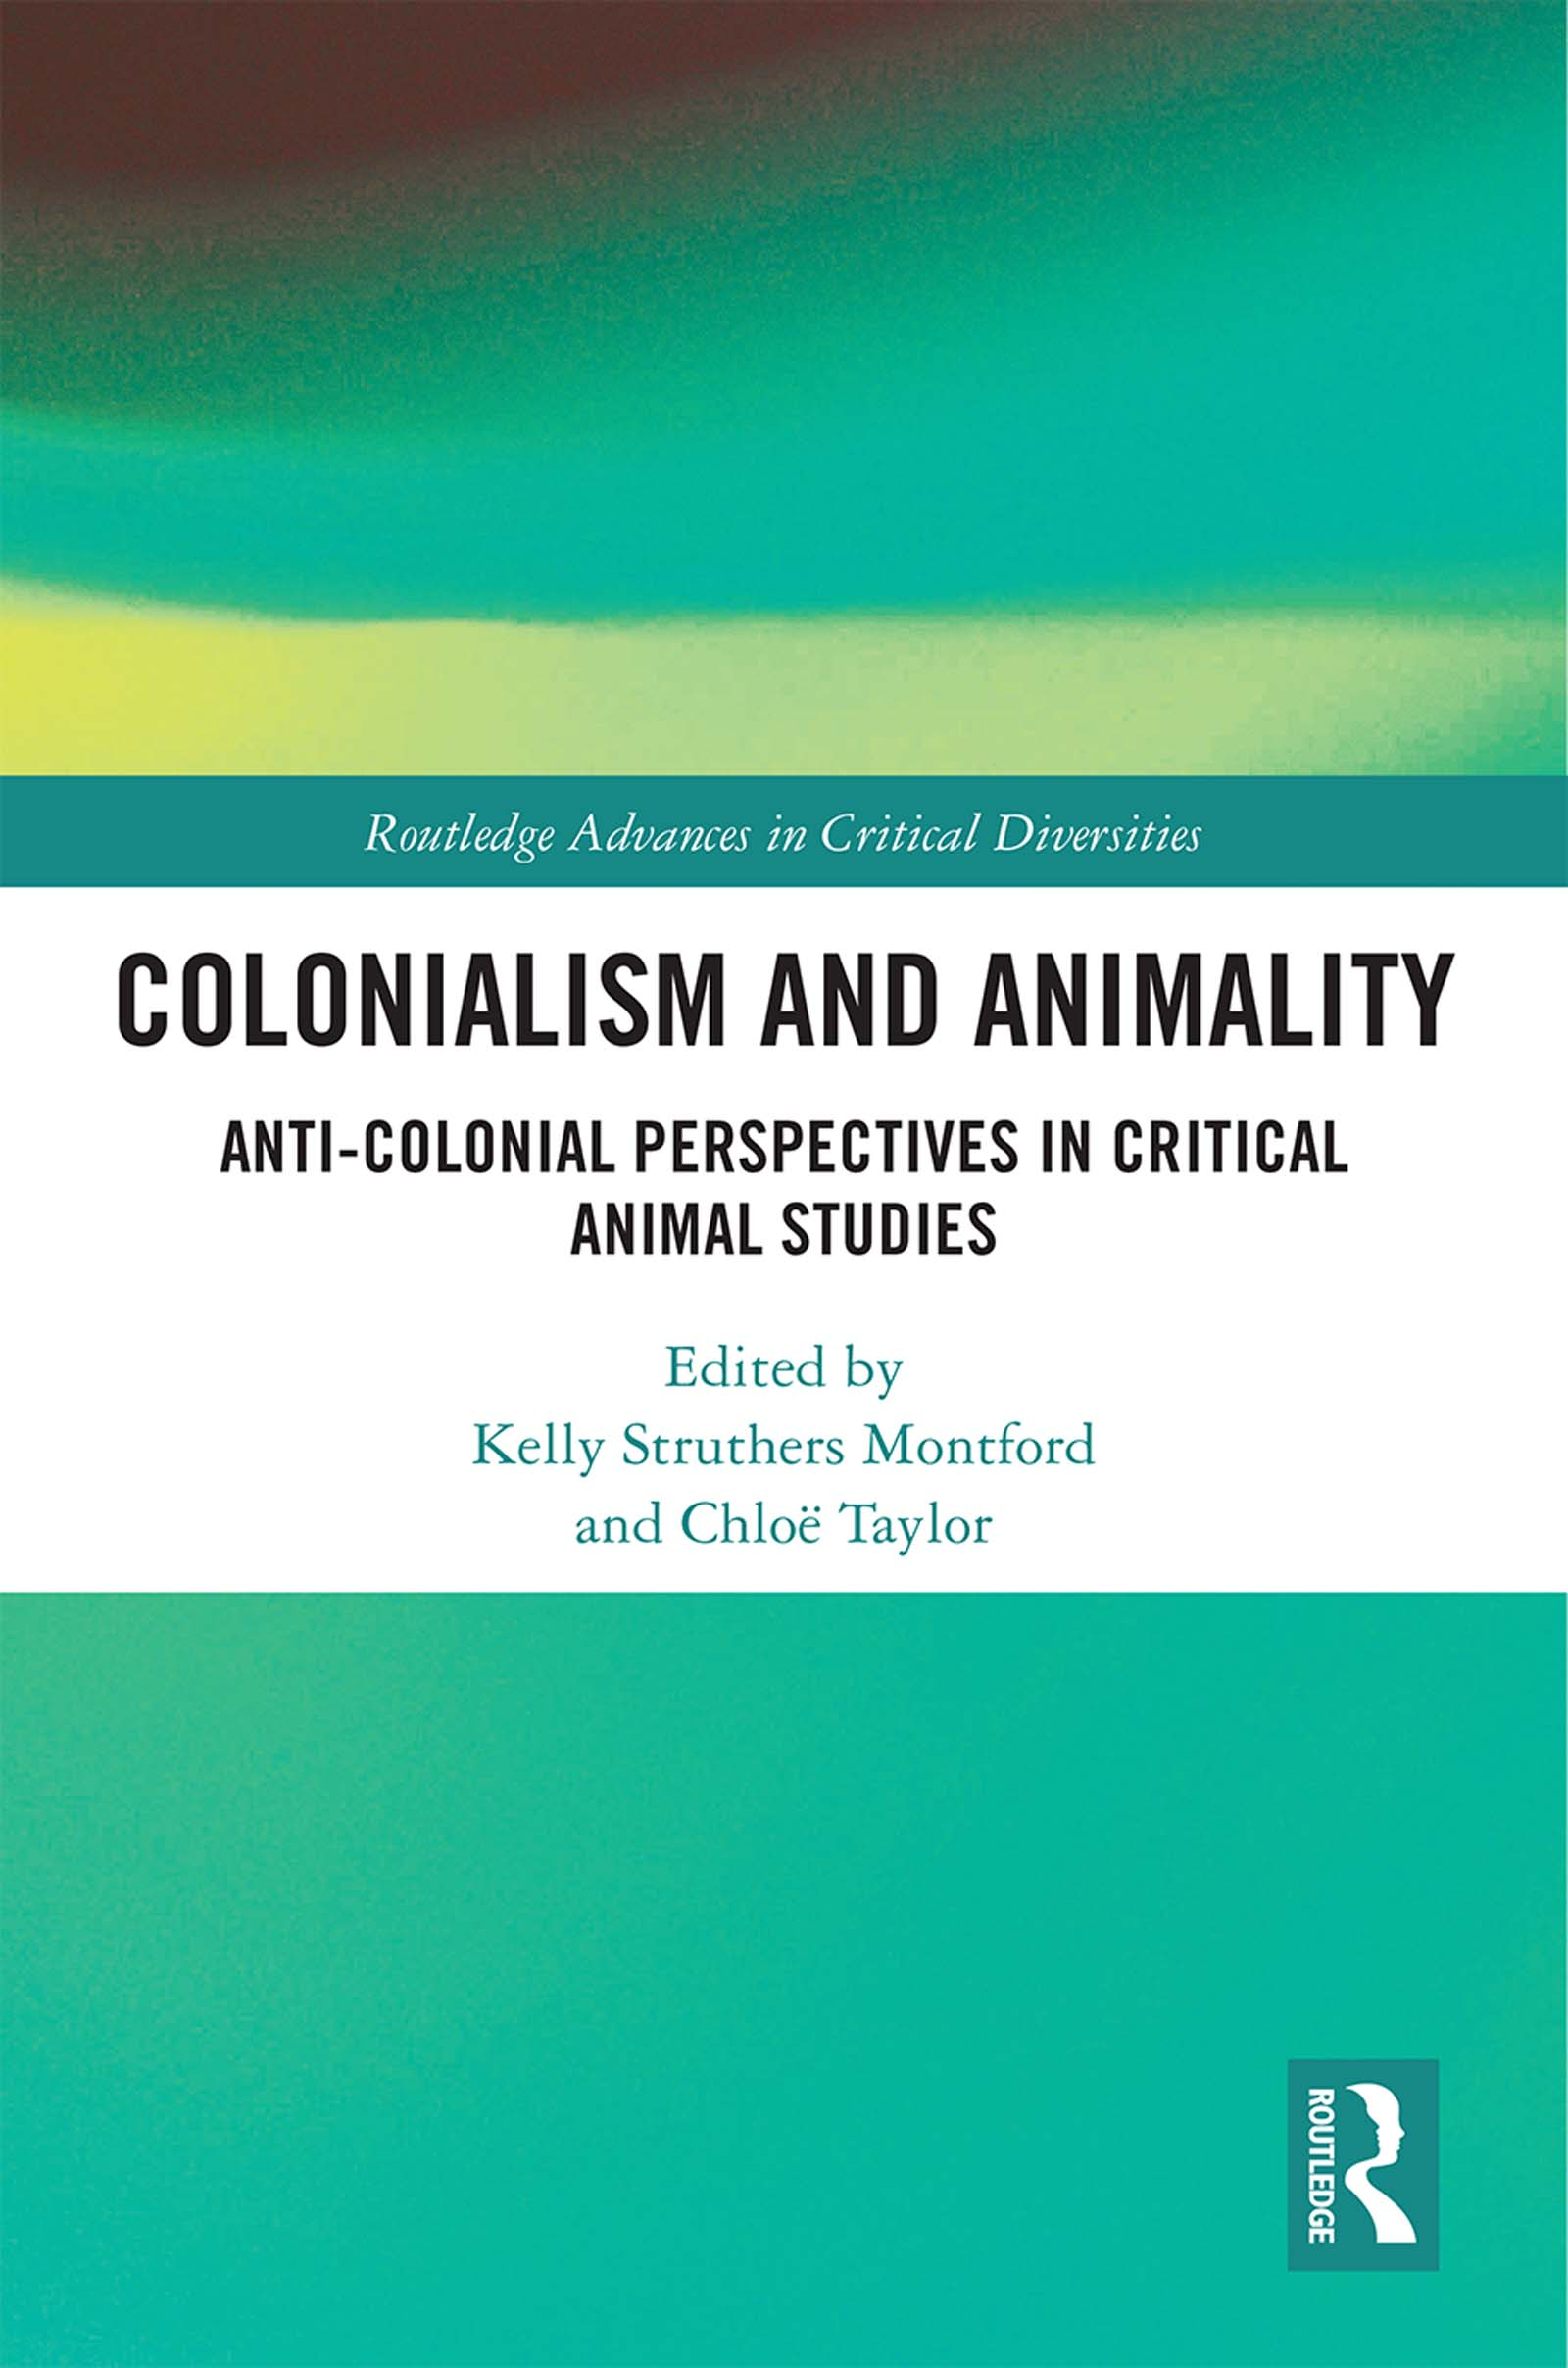 Colonialism and Animality: Anti-Colonial Perspectives in Critical Animal Studies, 1st Edition (Hardback) book cover